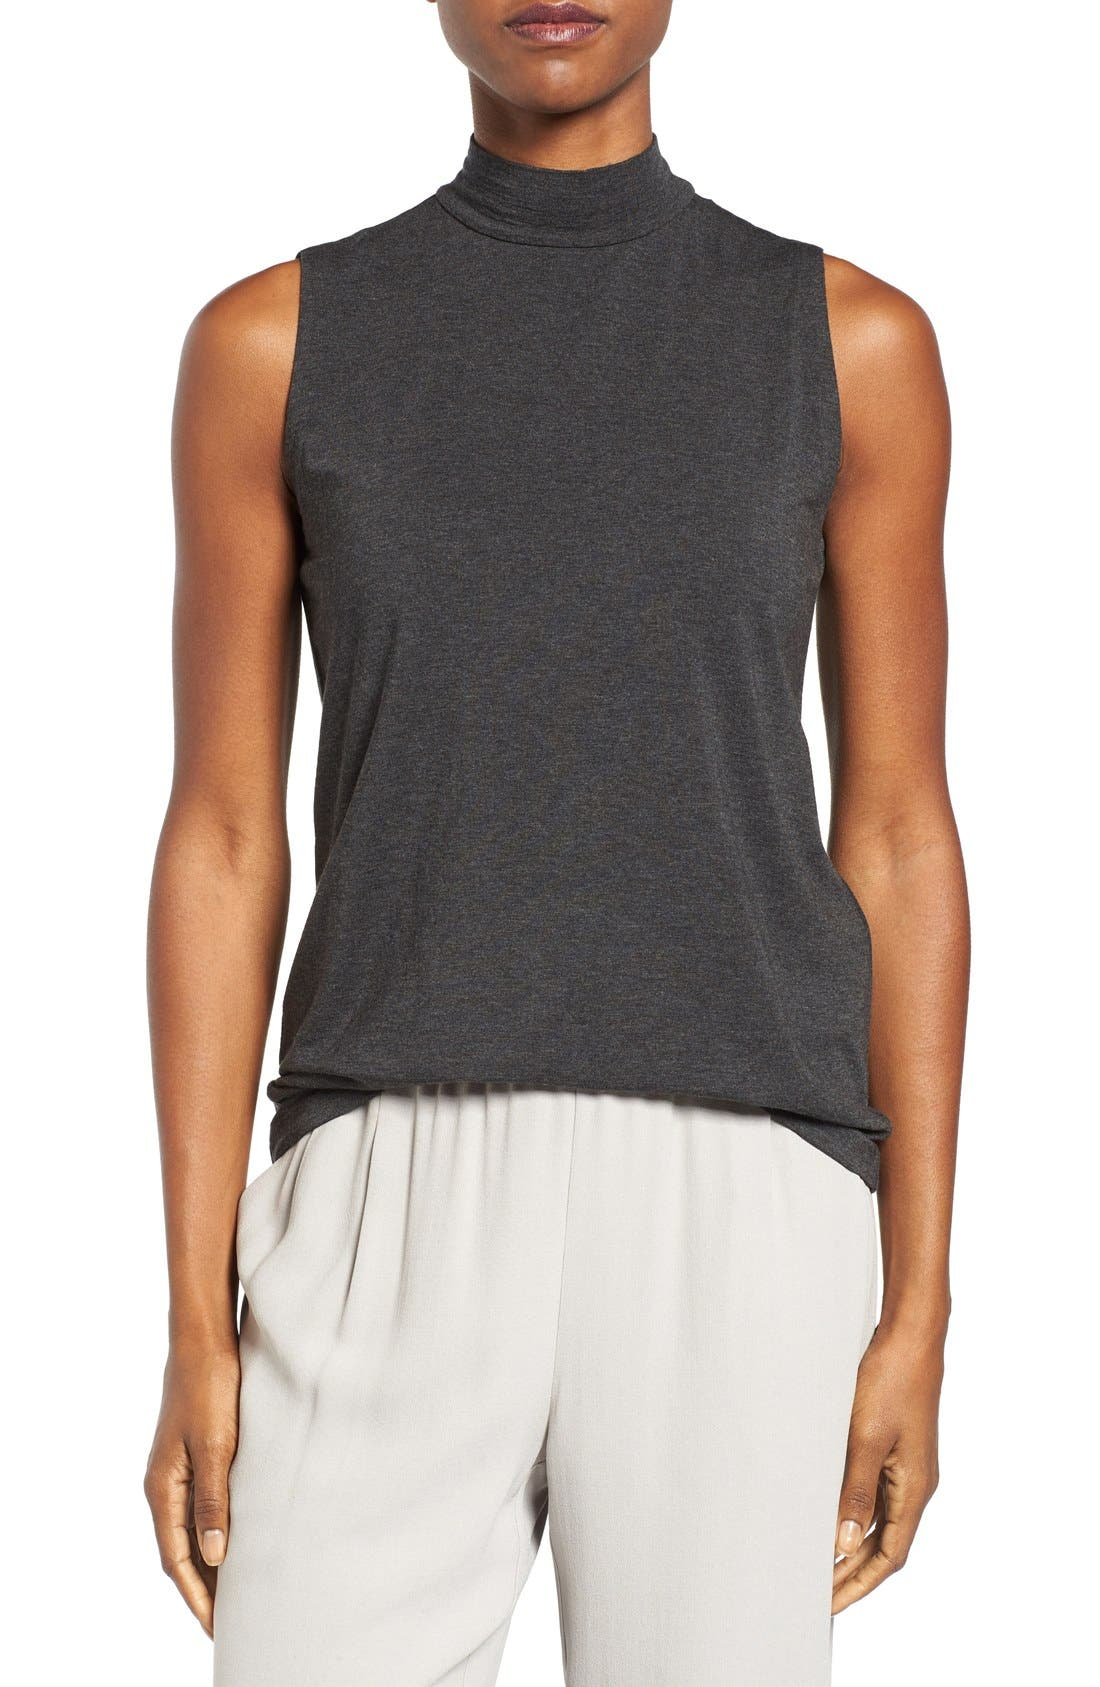 EILEEN FISHER,                             Lightweight Tencel<sup>®</sup> Lyocell Stretch Jersey Top,                             Main thumbnail 1, color,                             001